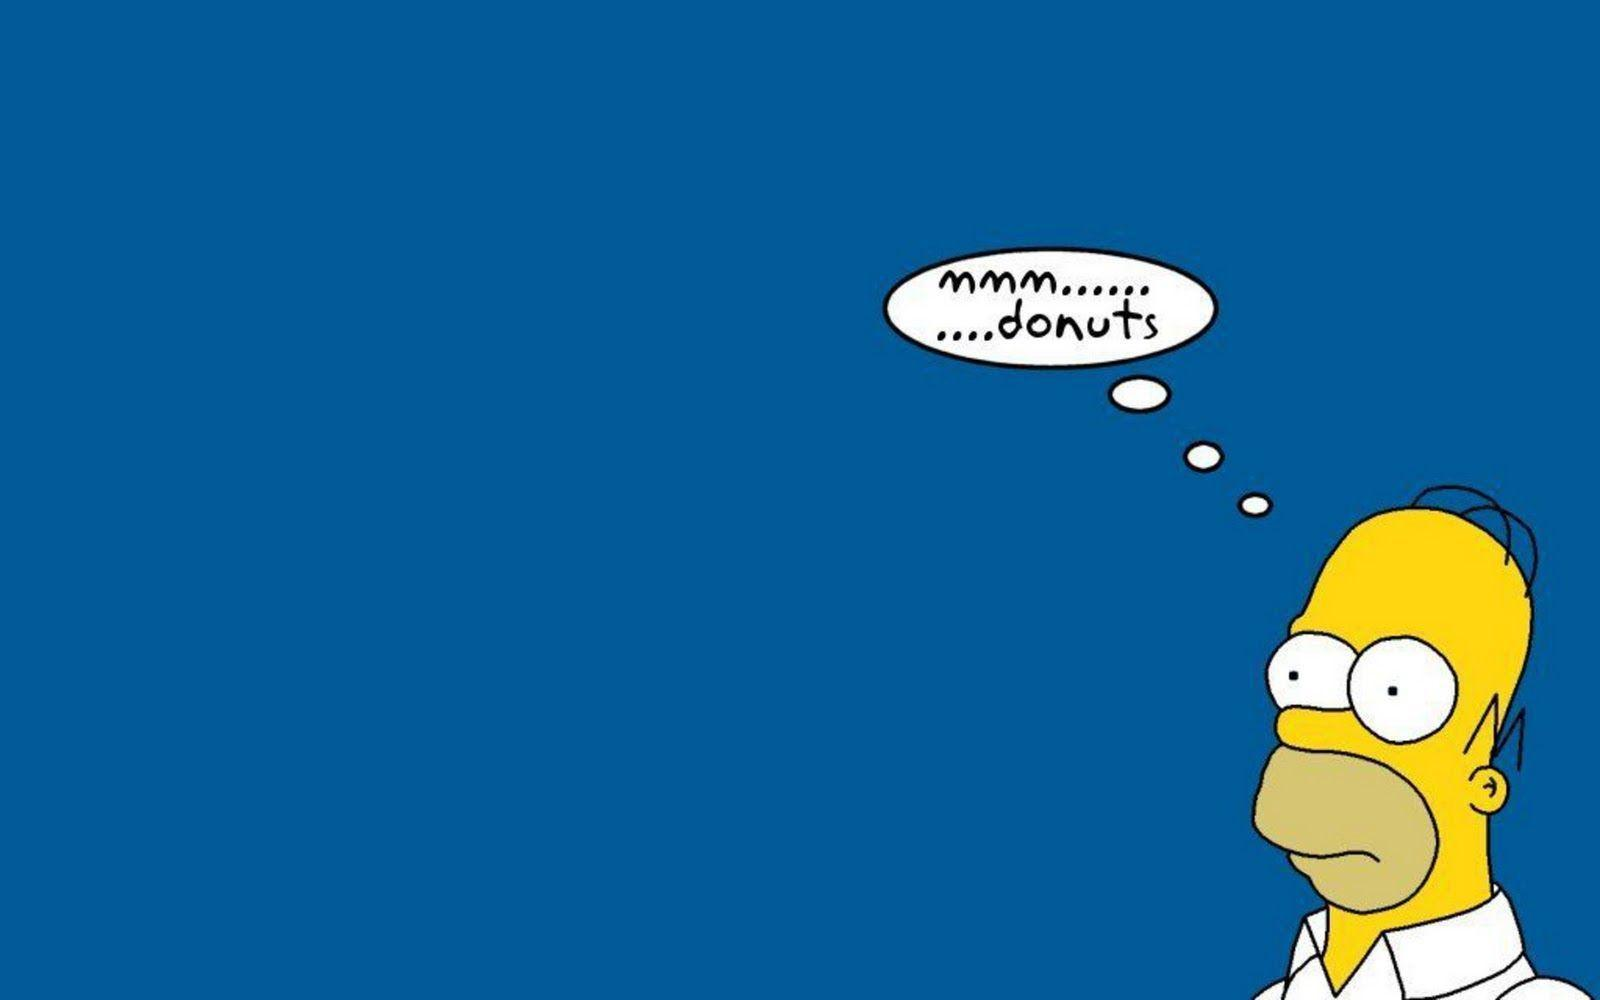 The simpsons wallpapers hd wallpaper cave for Wallpaper ordinateur